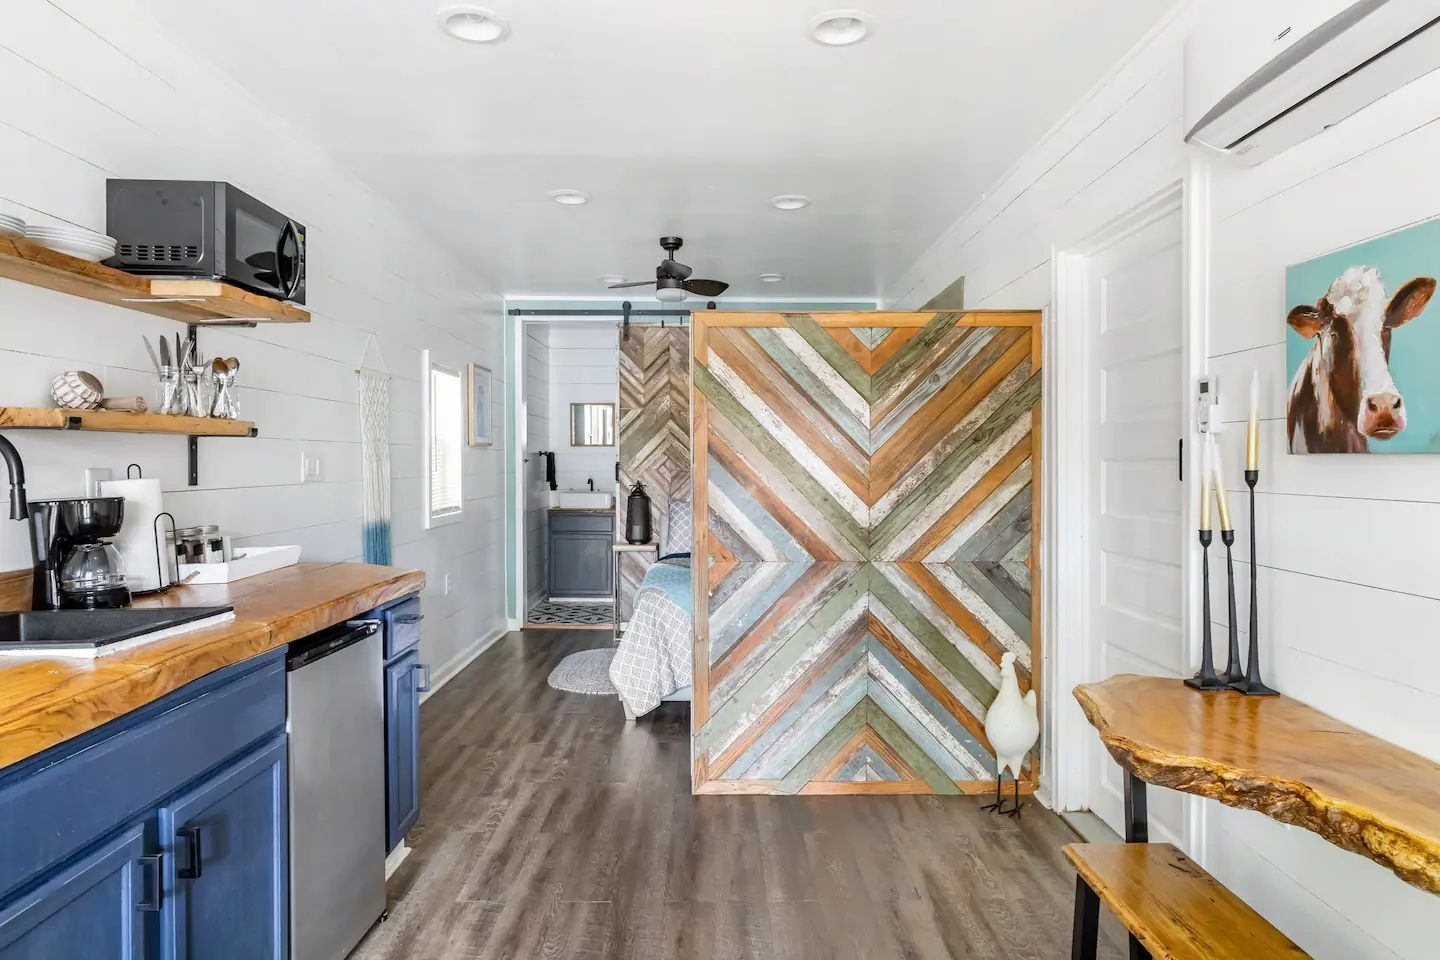 27 Tiny Houses In Georgia You Can Rent On Airbnb In 2021 Tiny House Living Tiny House Rentals Tiny Houses For Rent